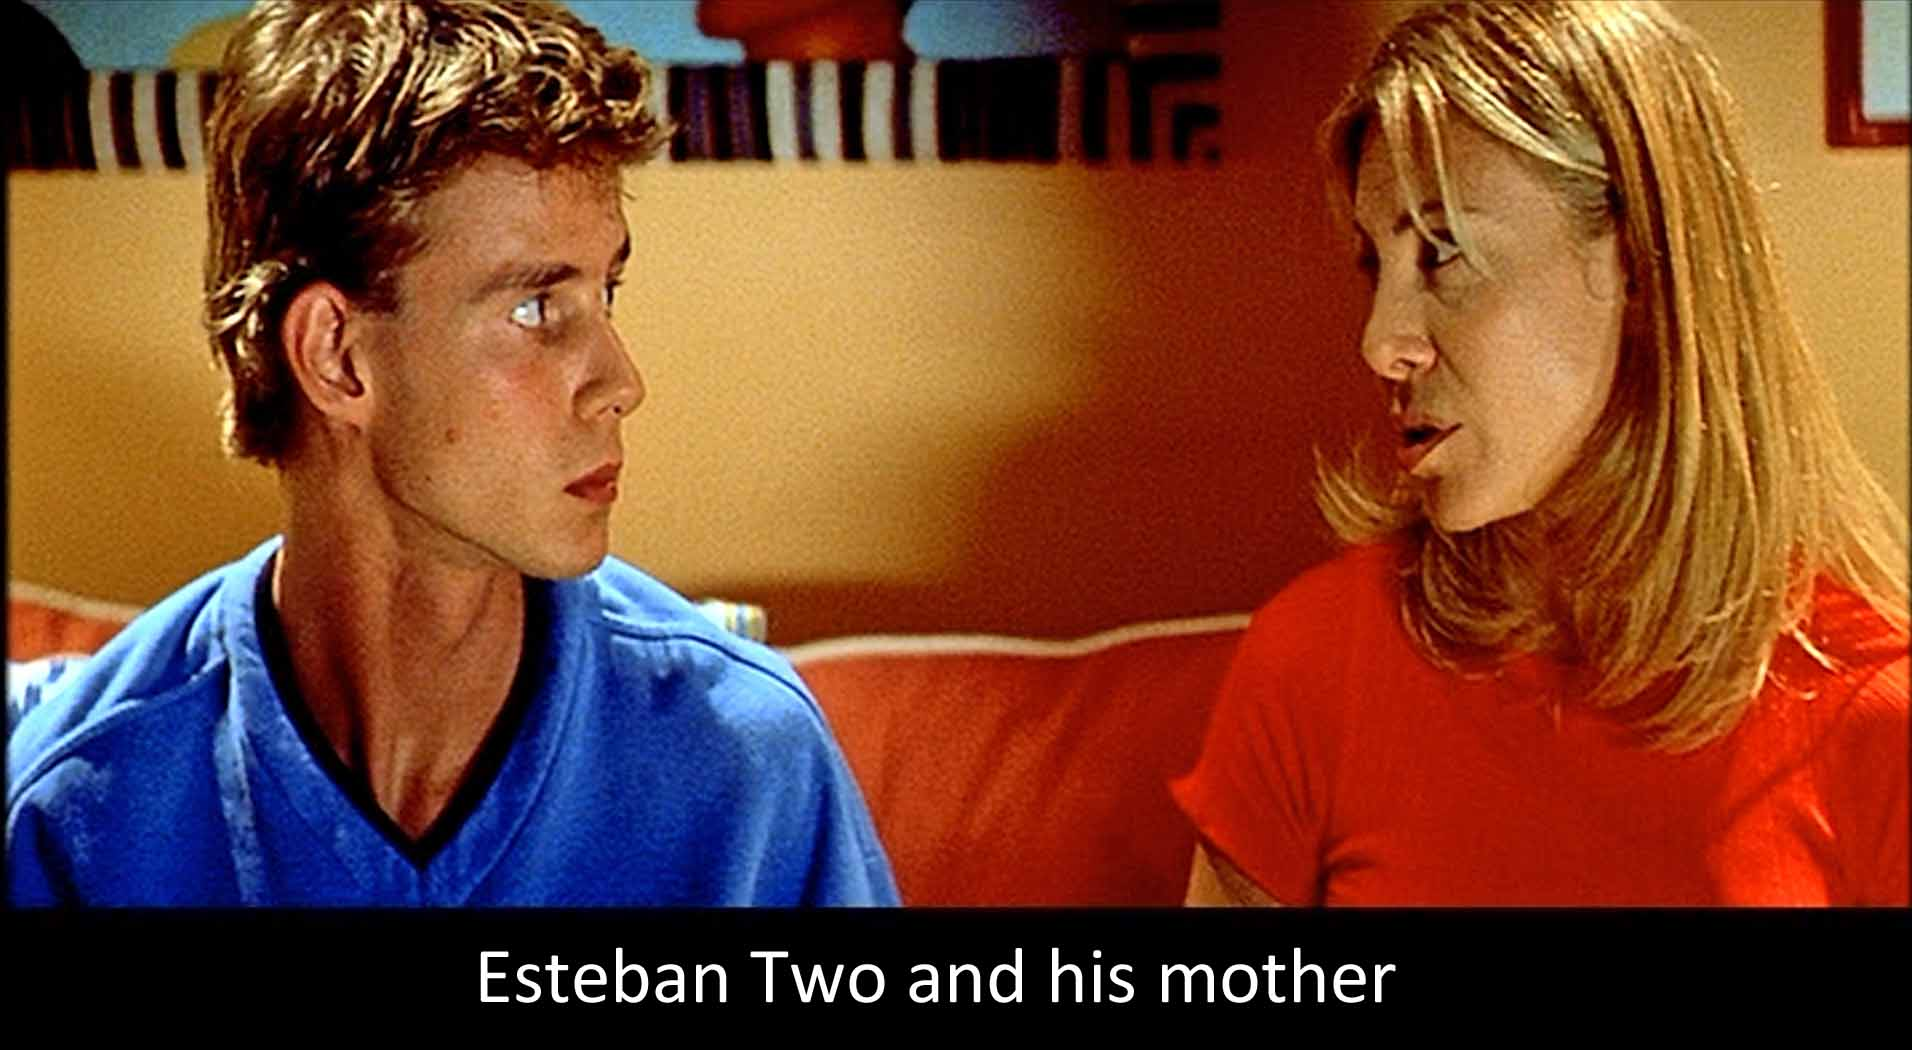 Esteban Two and his mother